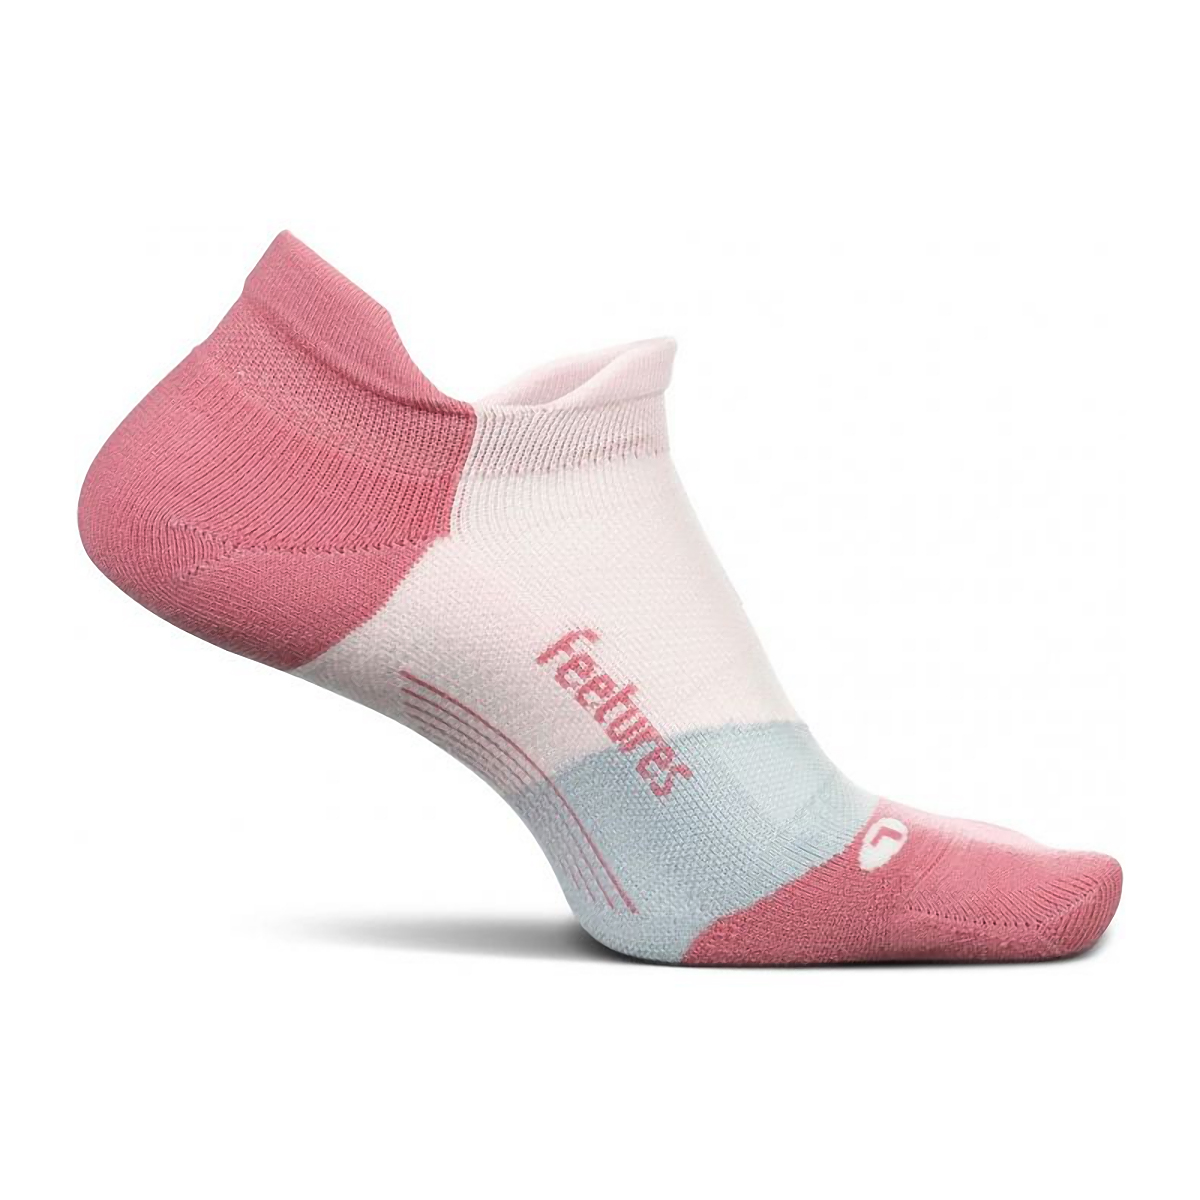 Feetures Elite Light Cushion No Show Sock - Color: Polychrome Pink - Size: S, Polychrome Pink, large, image 1